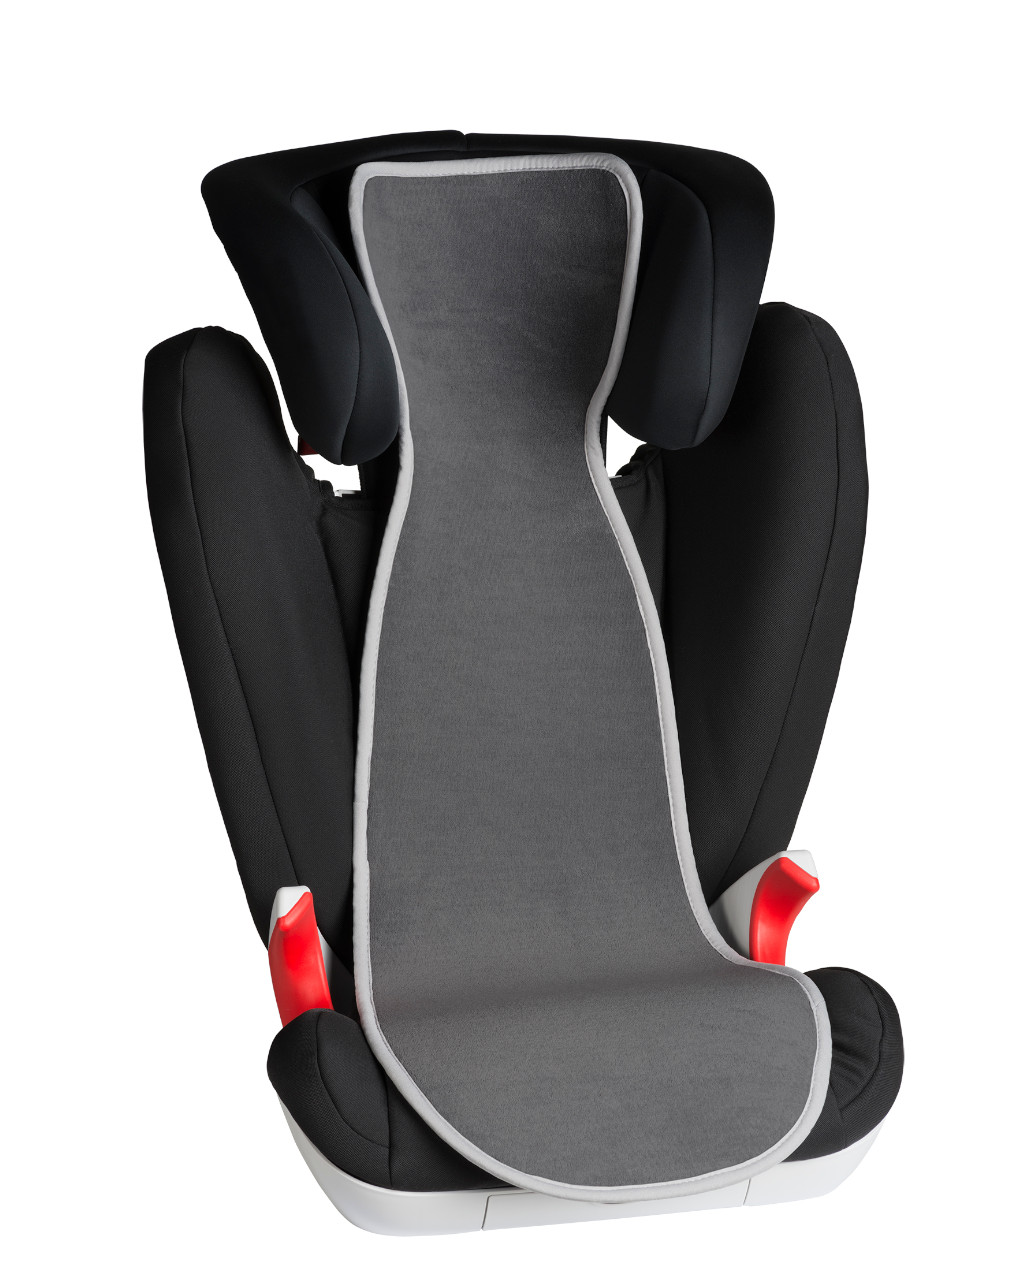 Cool seat foderina gruppo 2/3 aircuddle grigia - AirCuddle